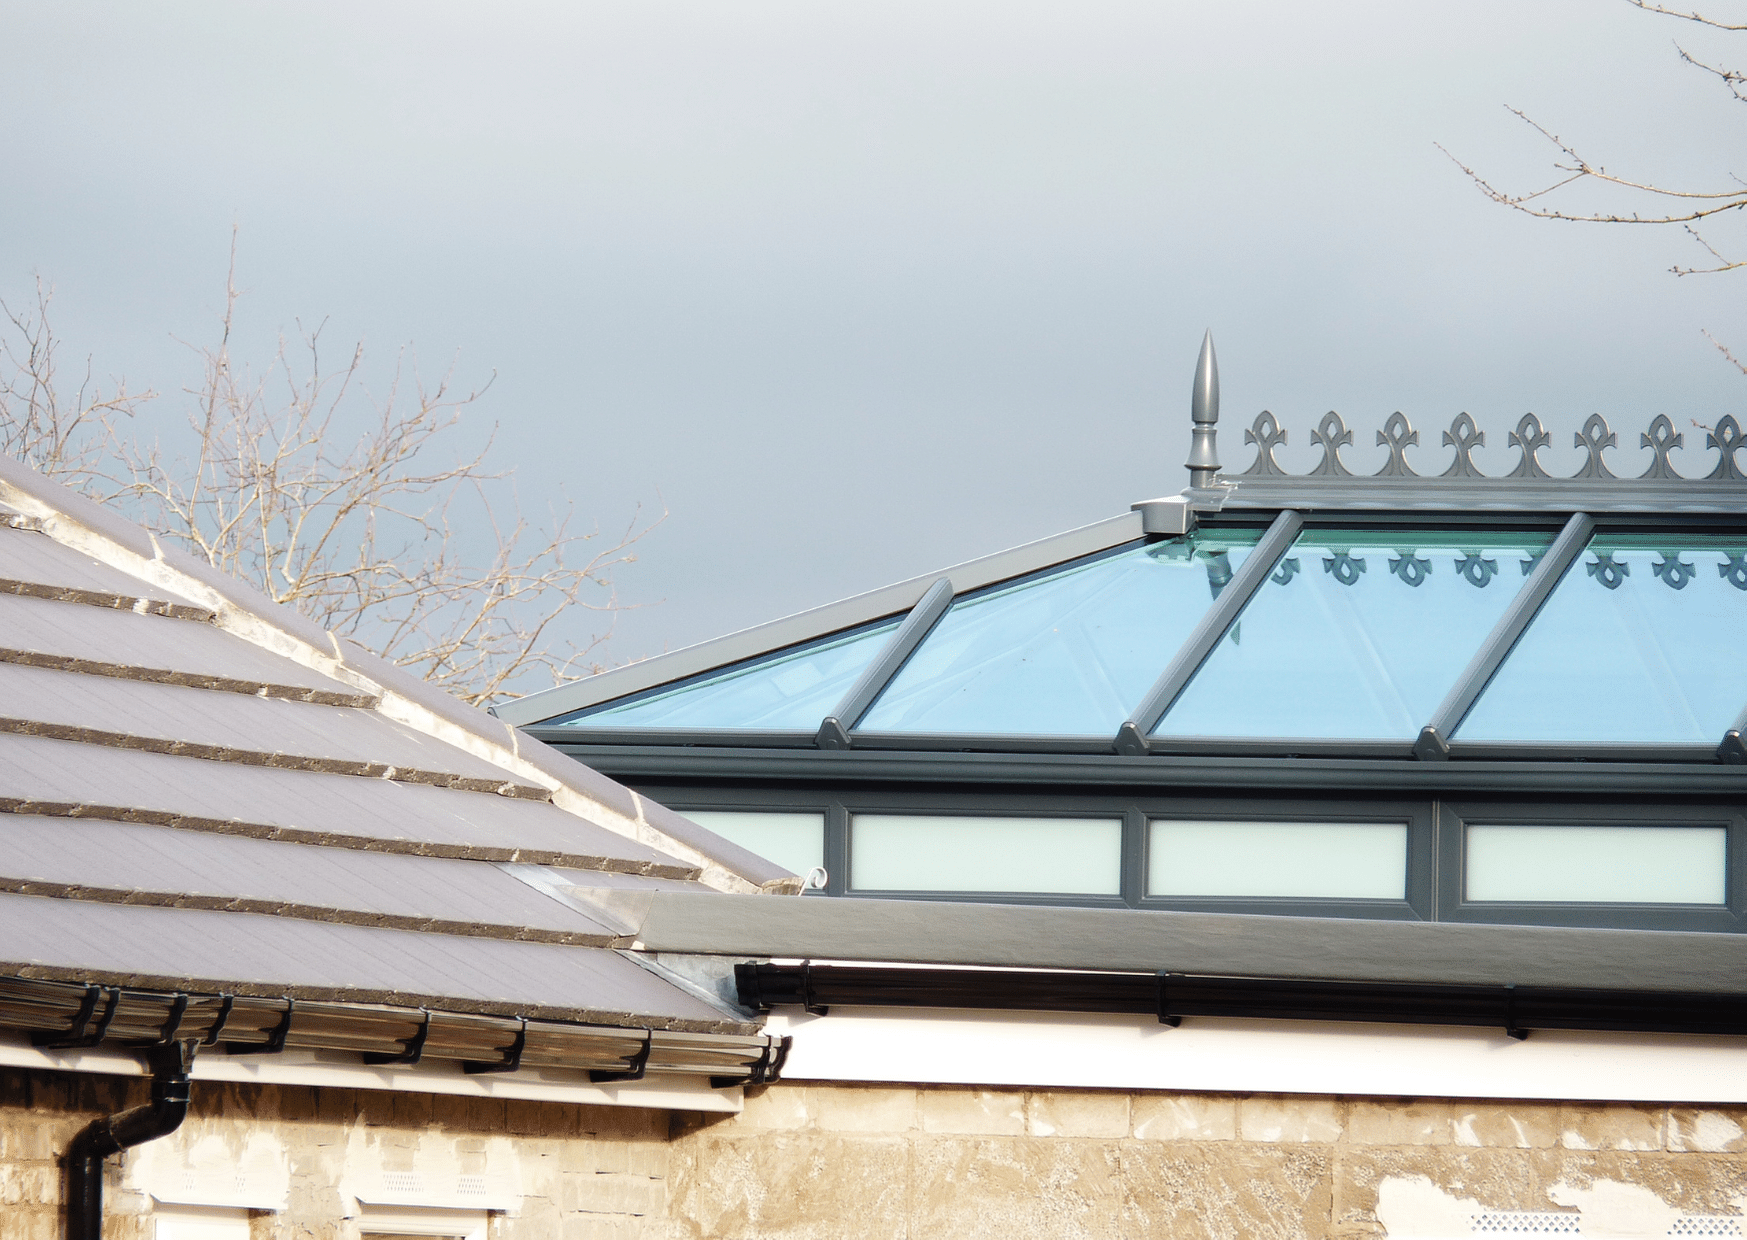 How much does a solid conservatory roof cost